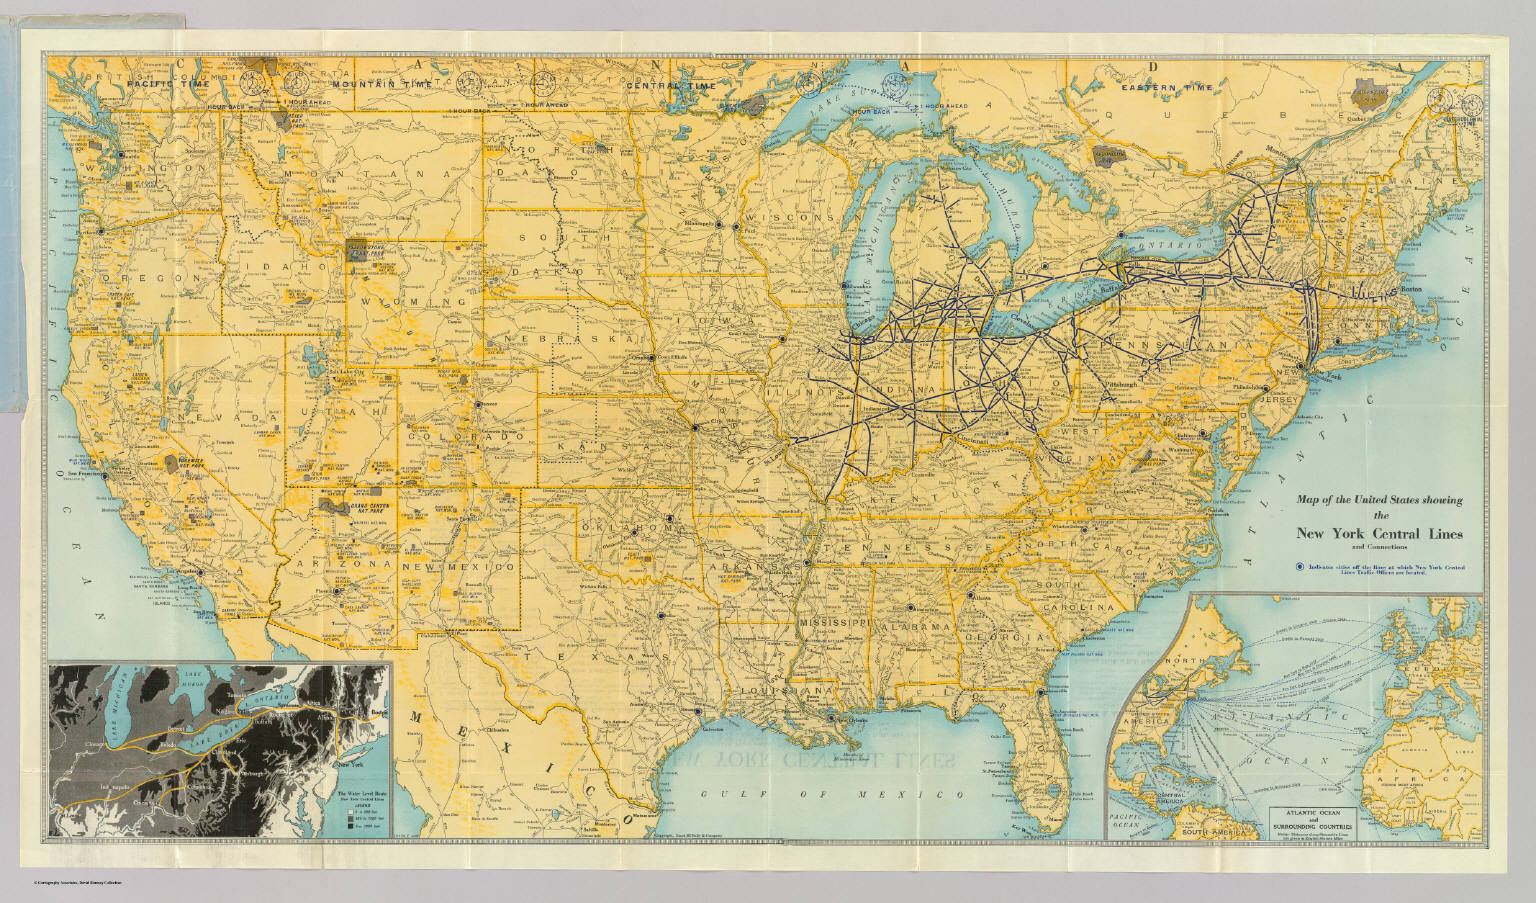 U.S. showing NY Central Lines. / New York Central Railroad Company ...